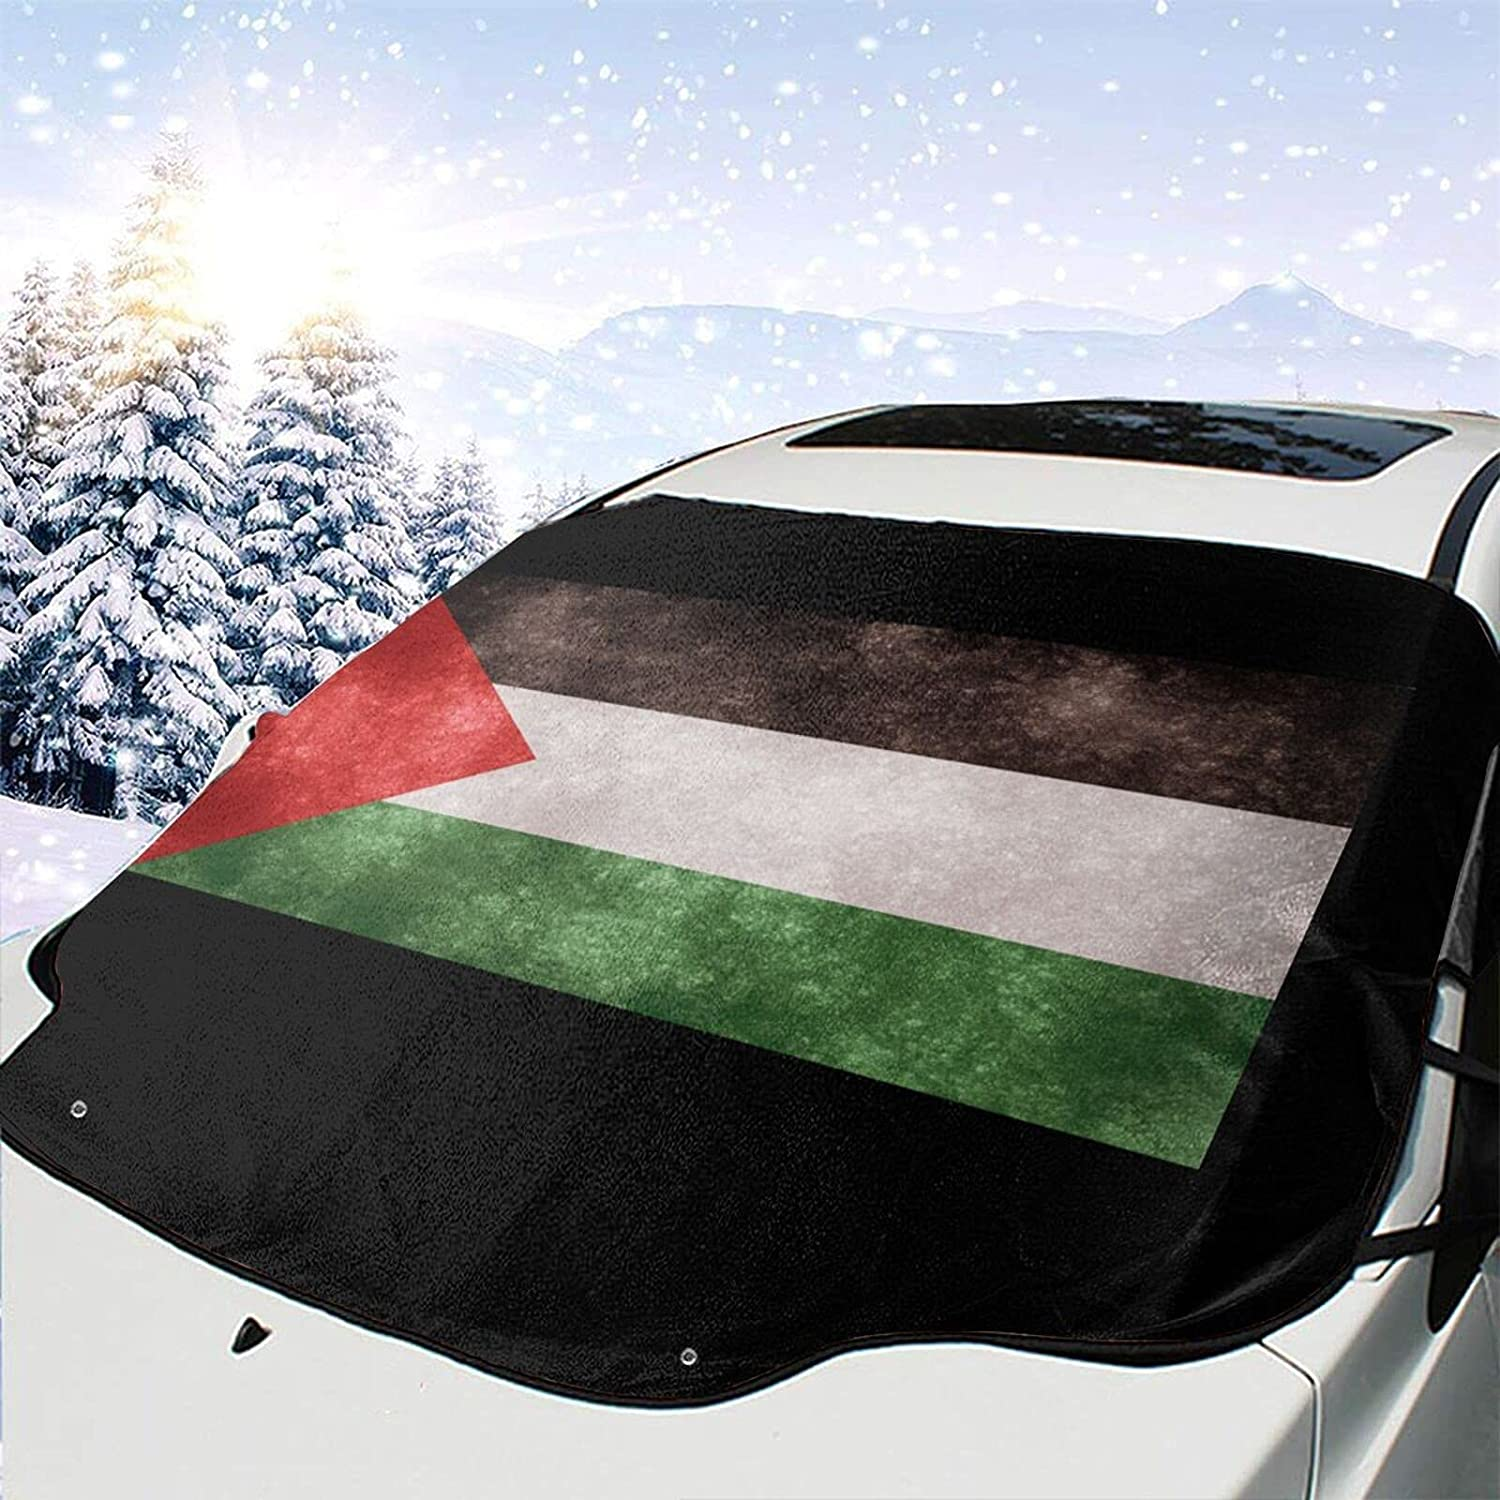 Max 73% OFF Flag of Palestine Windshield Snow Wiper Cover Visor 2021 Ice Removal